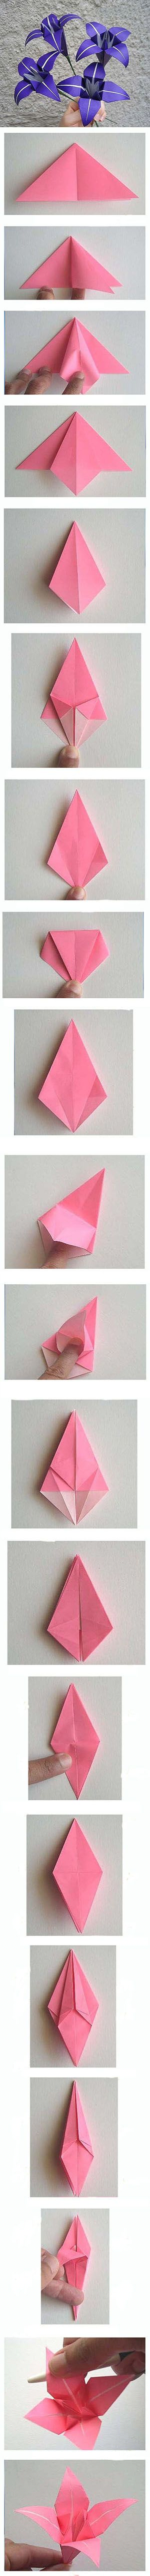 Beautiful Paper Flower | DIY & Crafts Tutorials